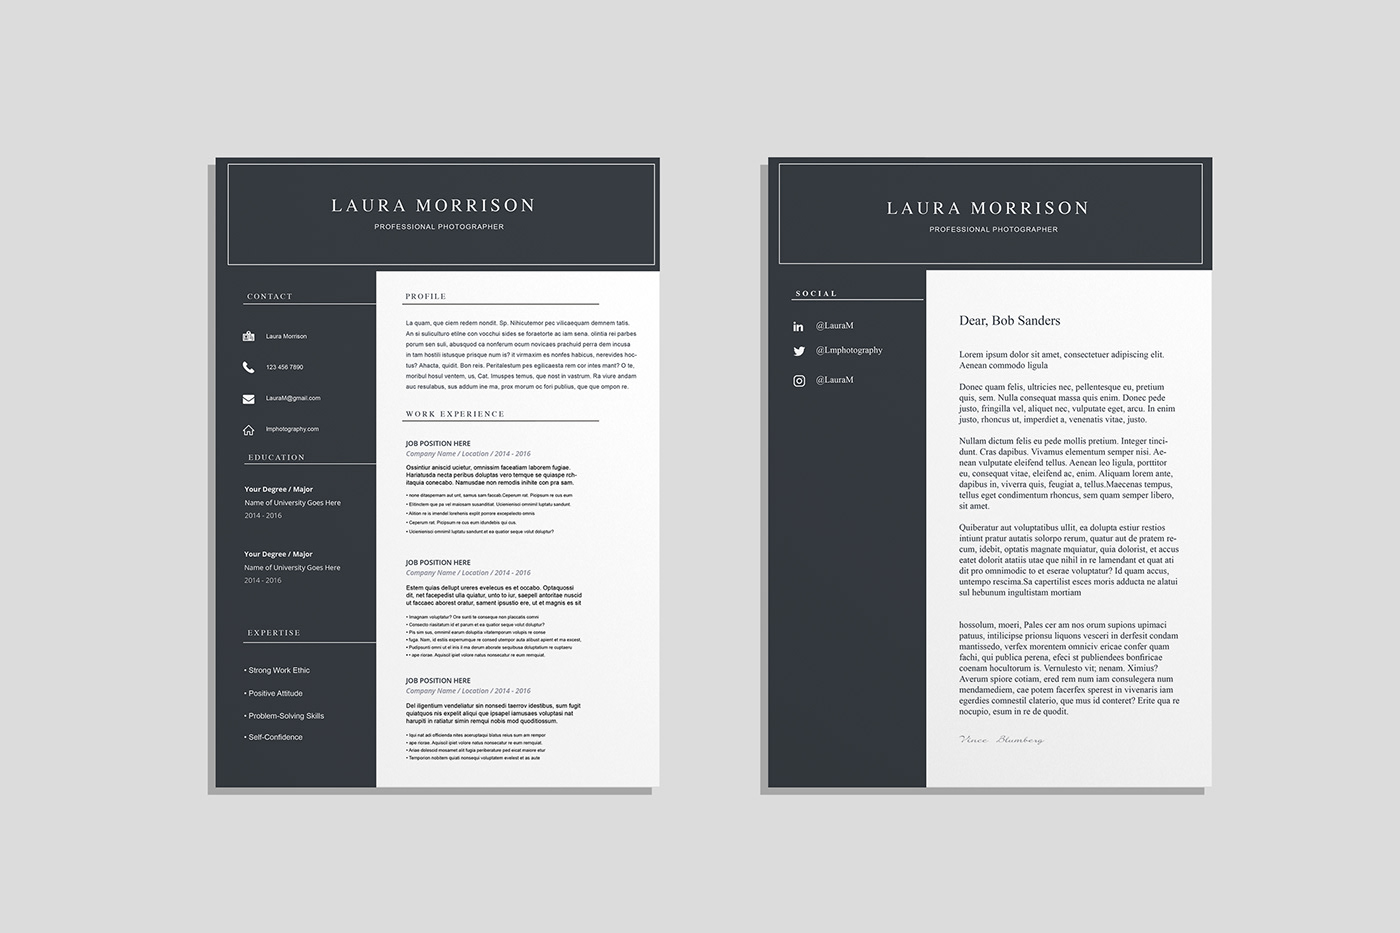 Resume Free Resume word word resume resume mockup Mockup cover letter template Free Template resume template